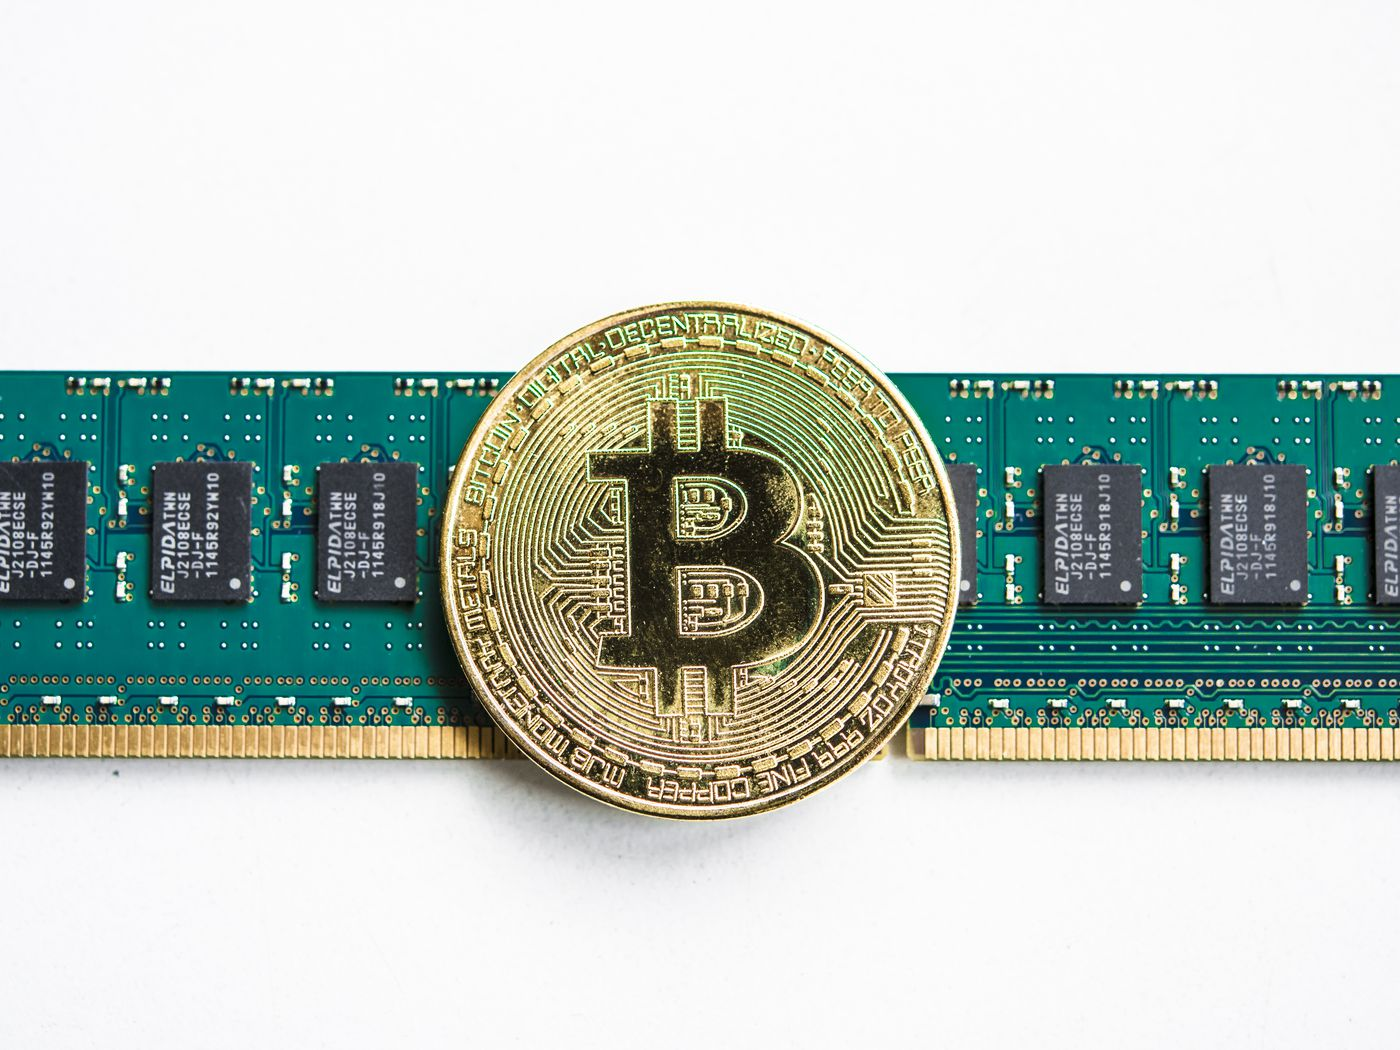 Bitcoin mining: a report finds the network mostly runs on